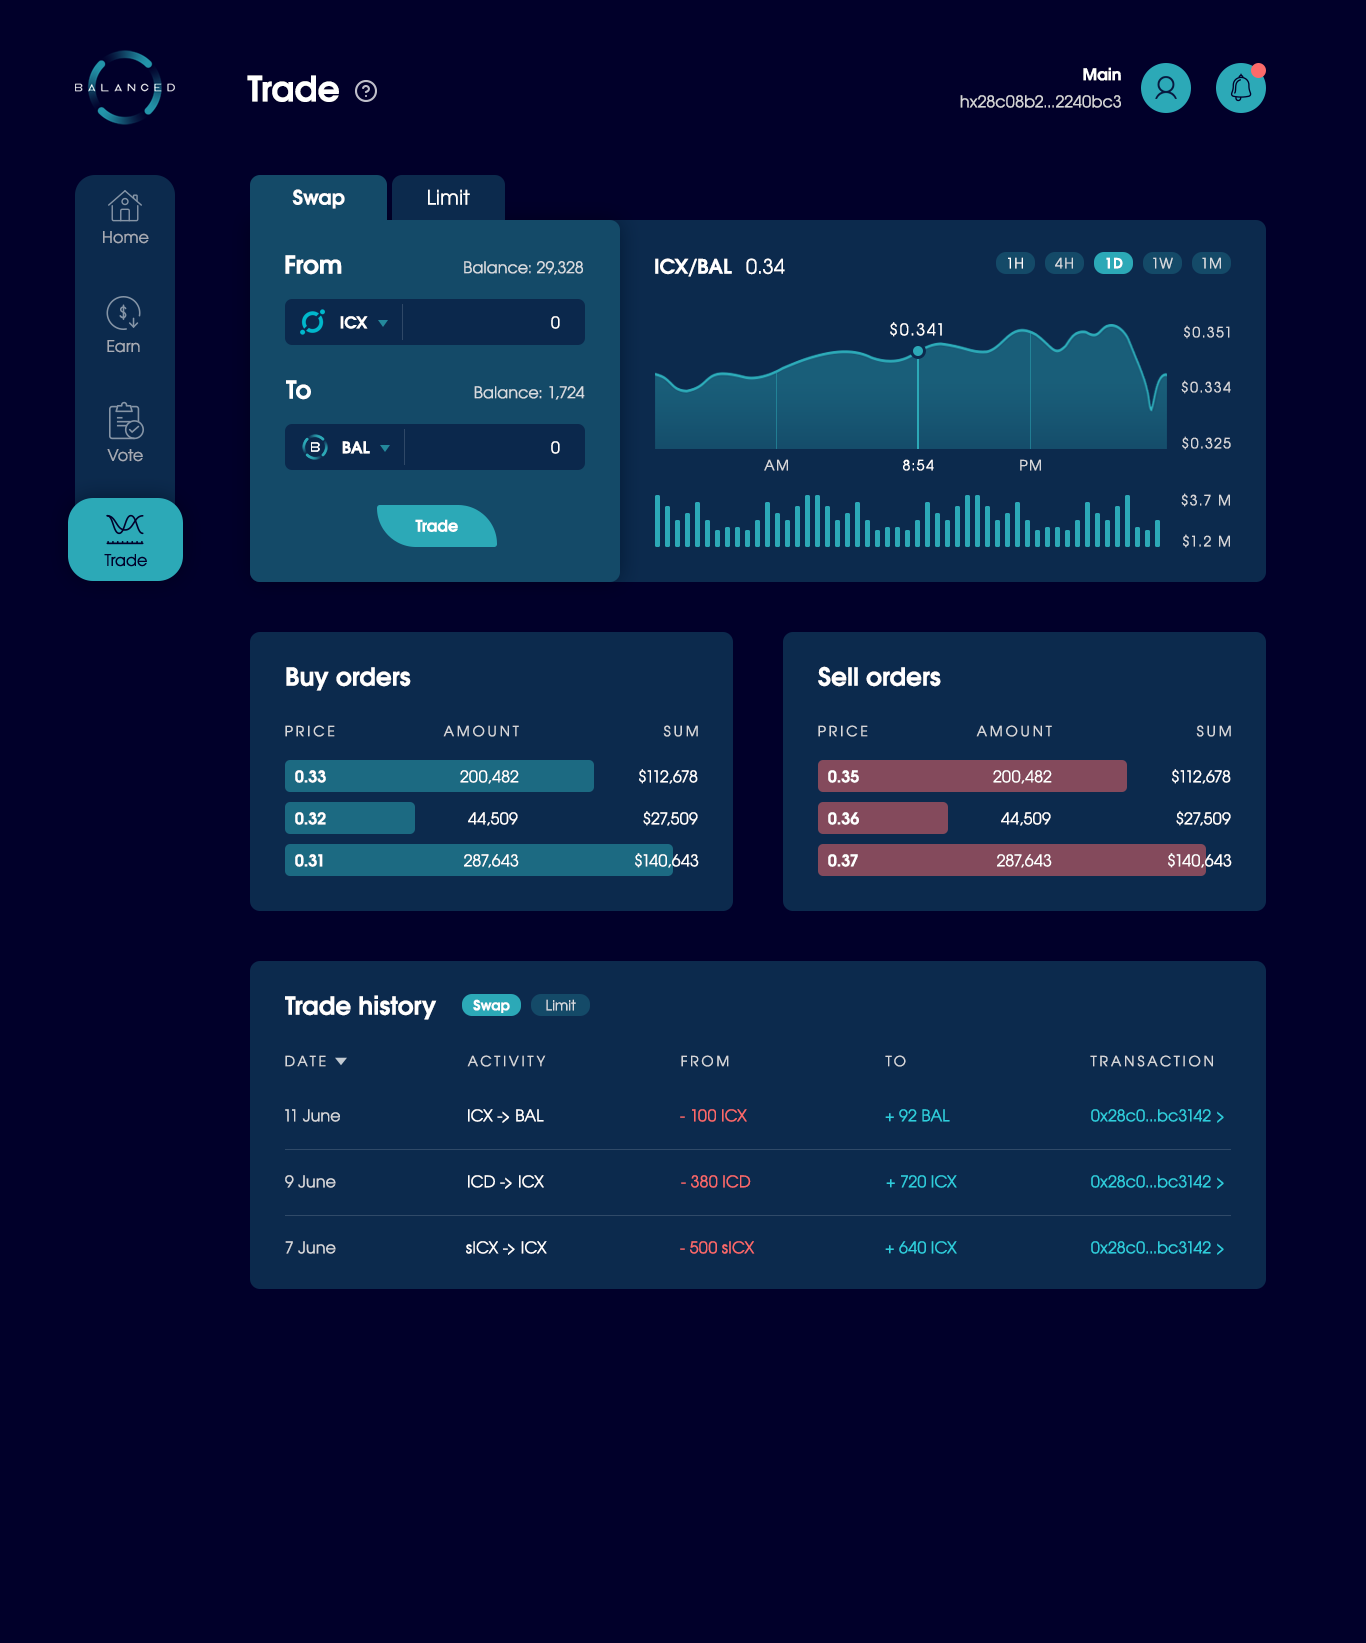 Interface design for the Balanced trade page